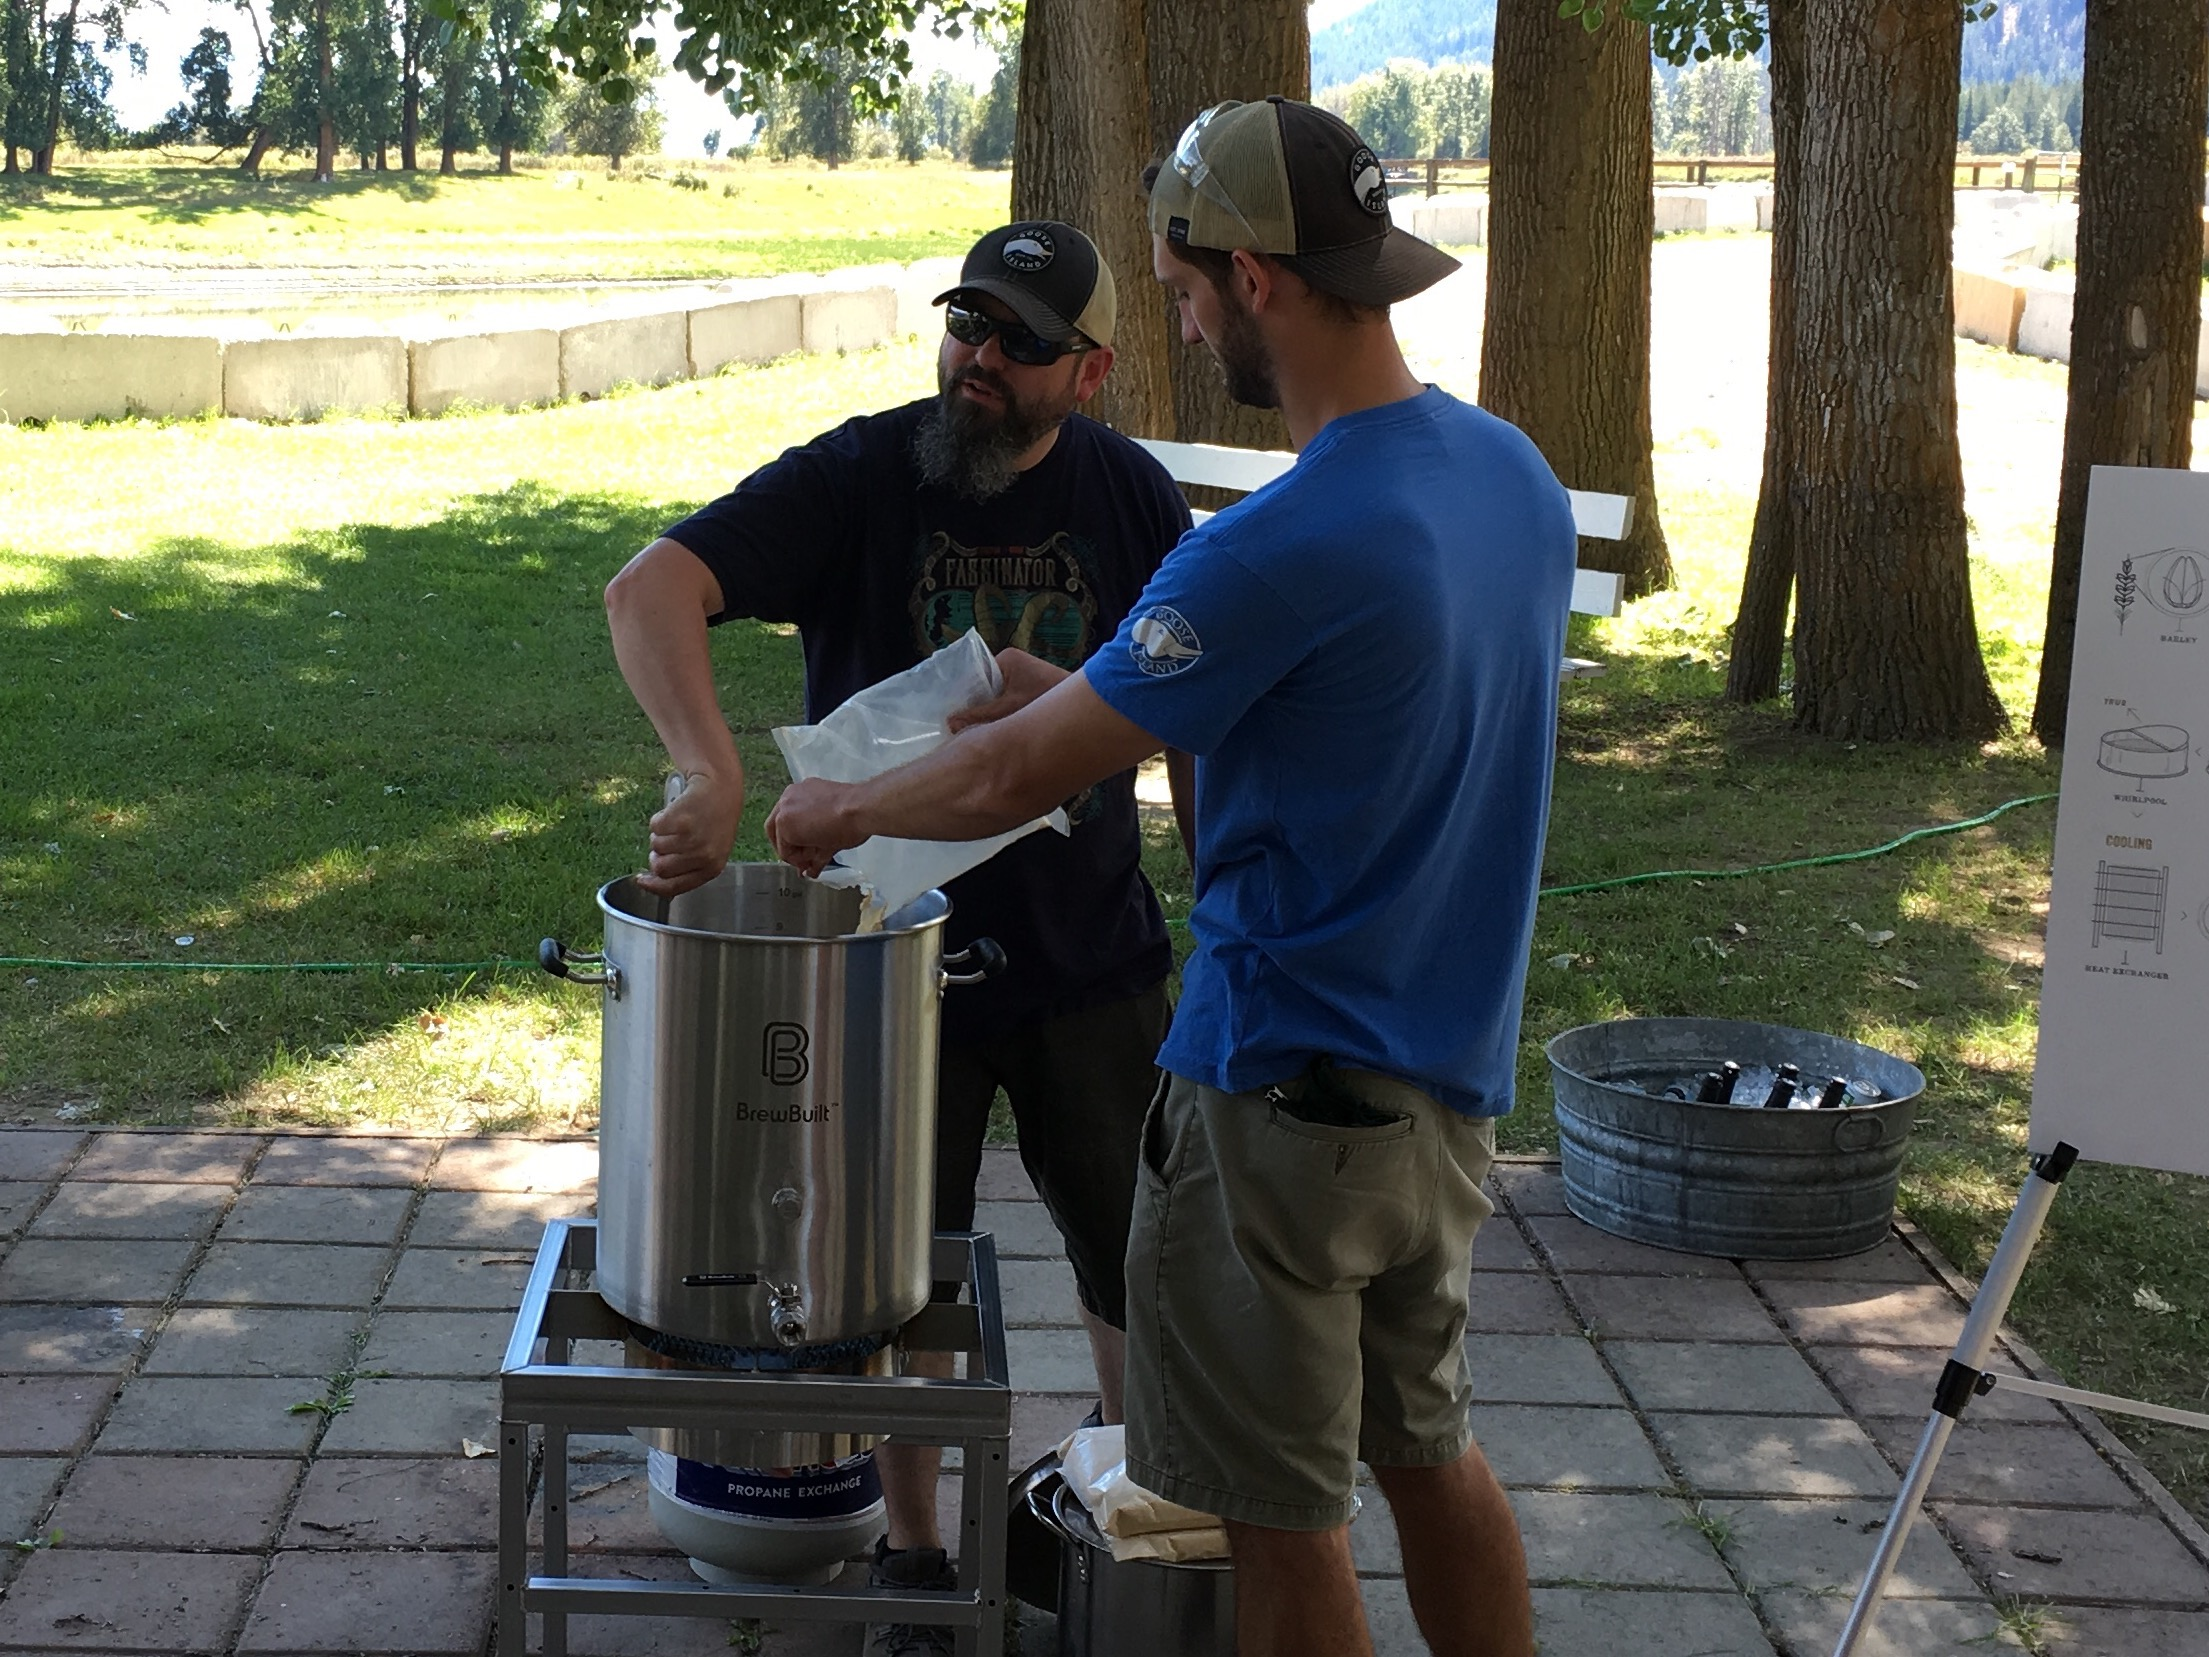 Goose Island brewers Keith Gabbett and Quinn Fuechsl adding the malt extract to the farm brew at Elk Mountain Farms. Yes, we used malt extract.